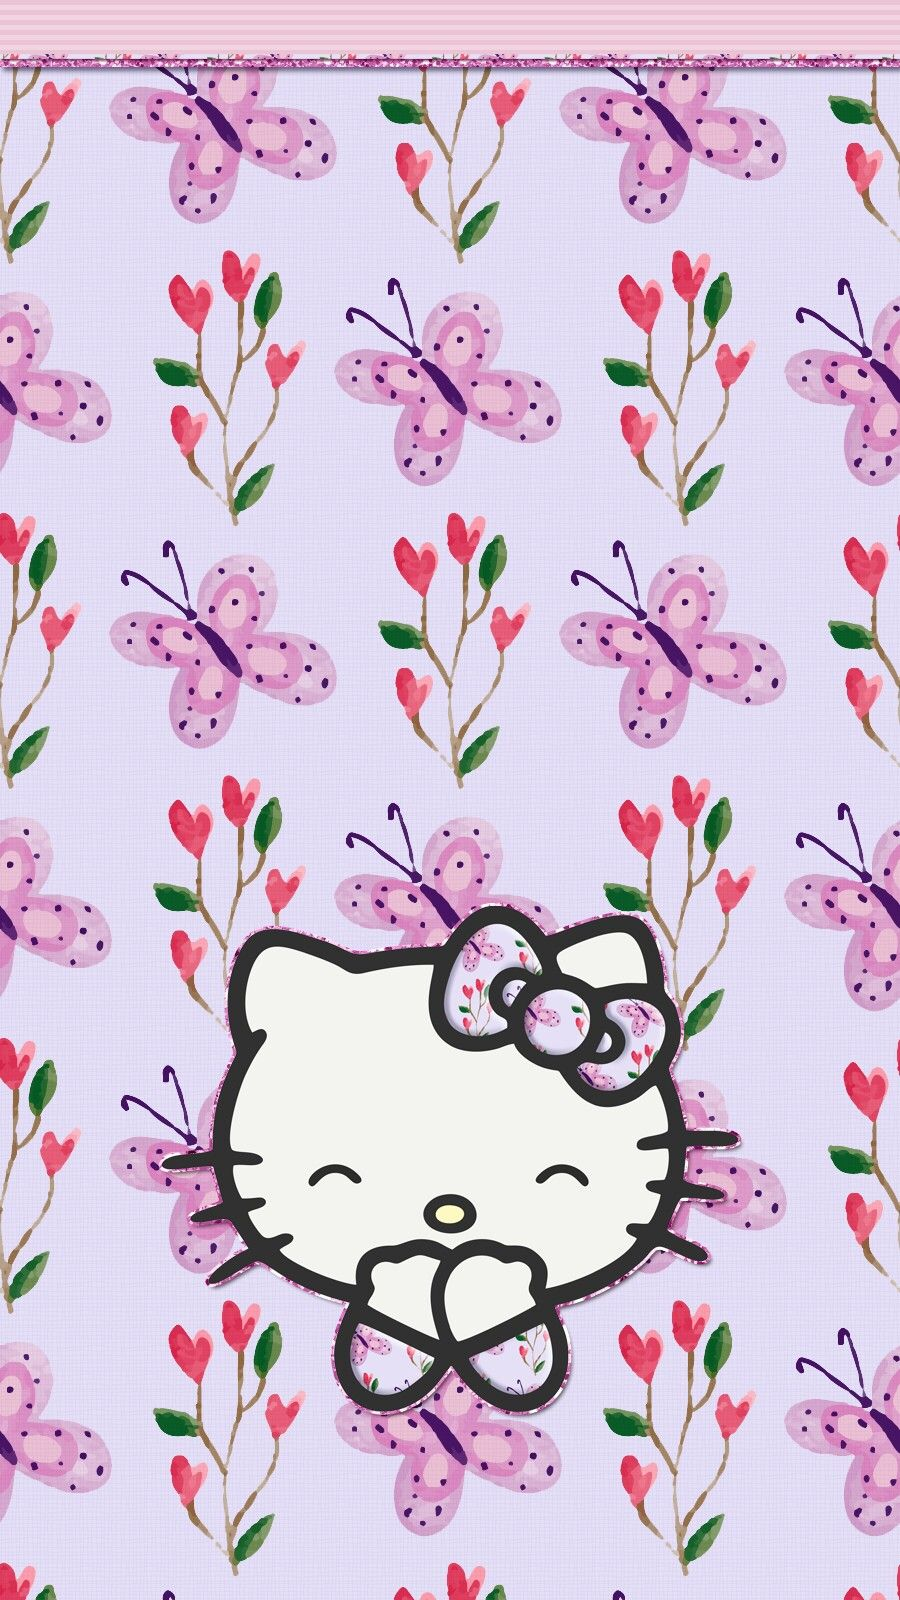 Pin By Princess On Backgrounds Pinterest Hello Kitty Wallpaper